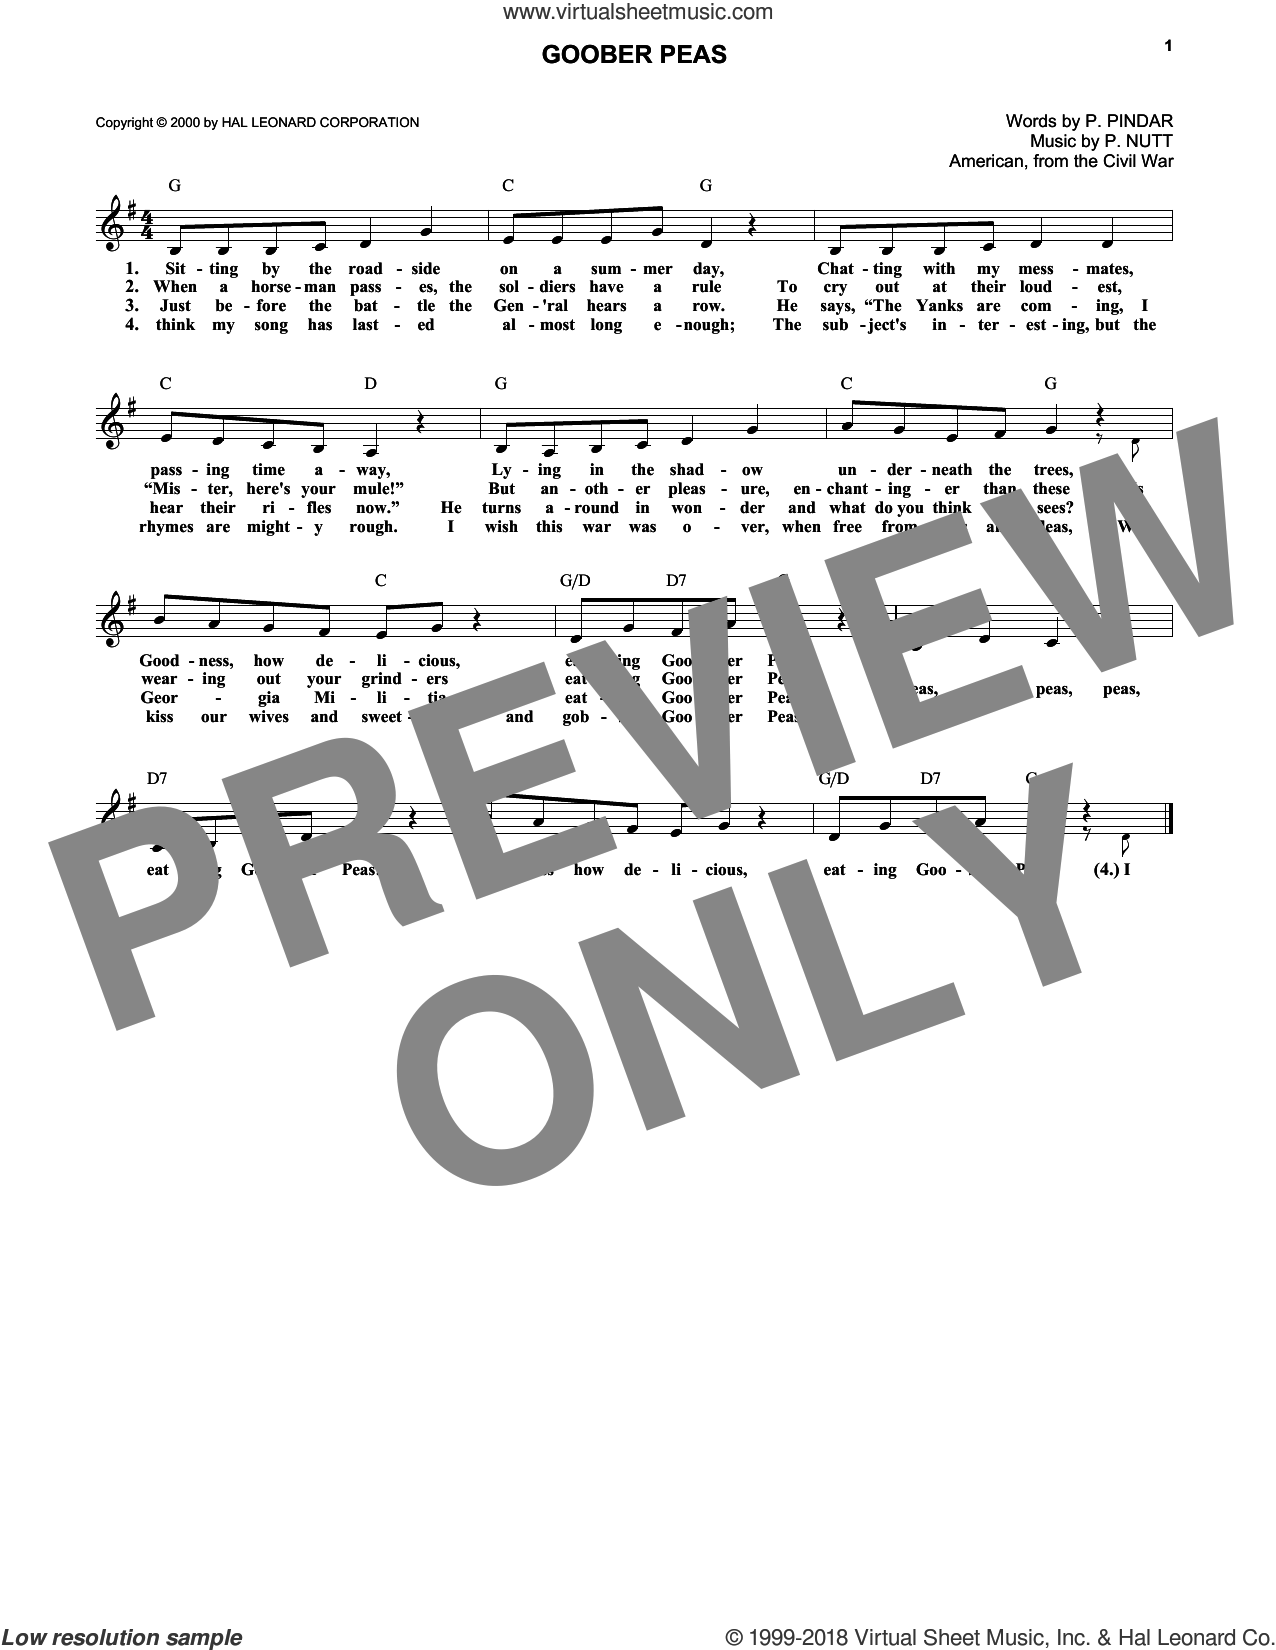 Goober Peas sheet music for voice and other instruments (fake book) by P. Nutt and P. Pindar, intermediate skill level